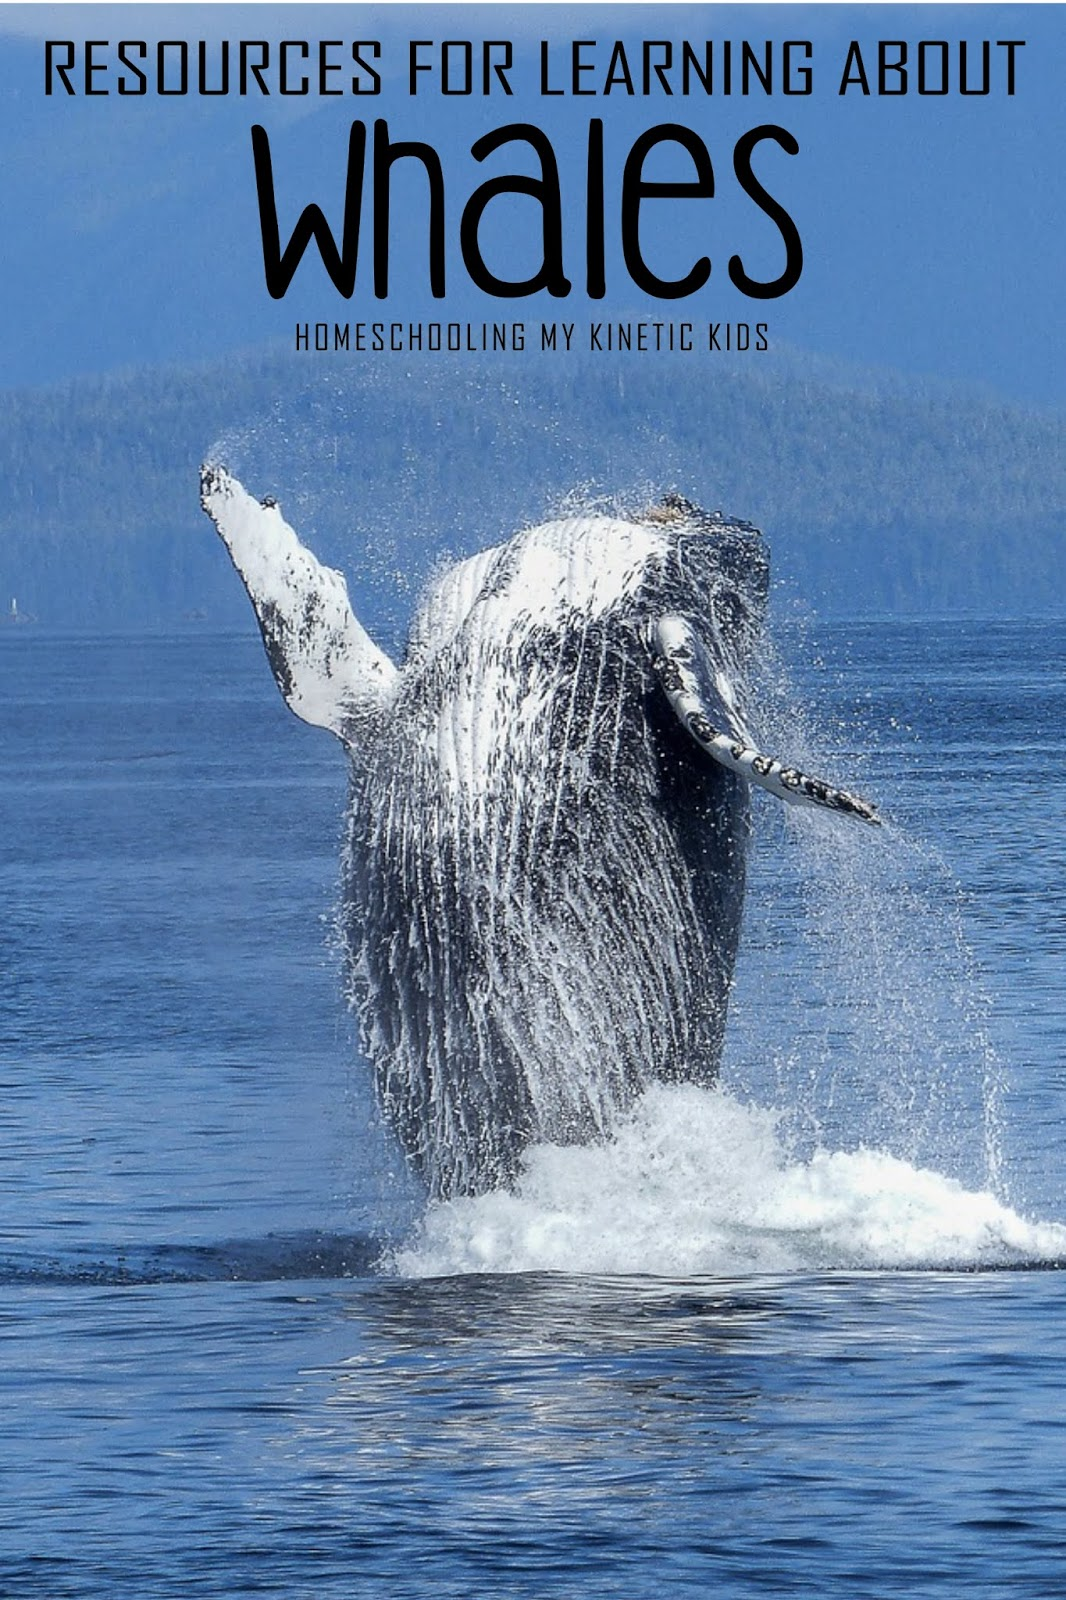 Resources For Learning About Whales